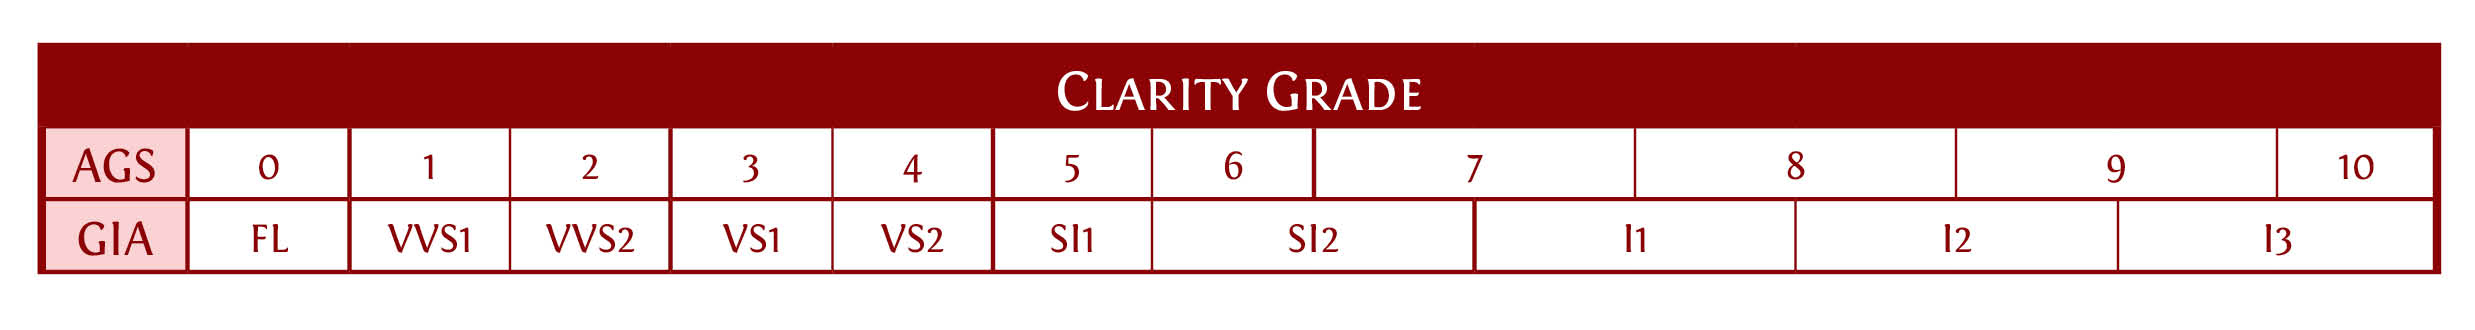 Clarity grading scale showing both GIA and AGS clarity scales.